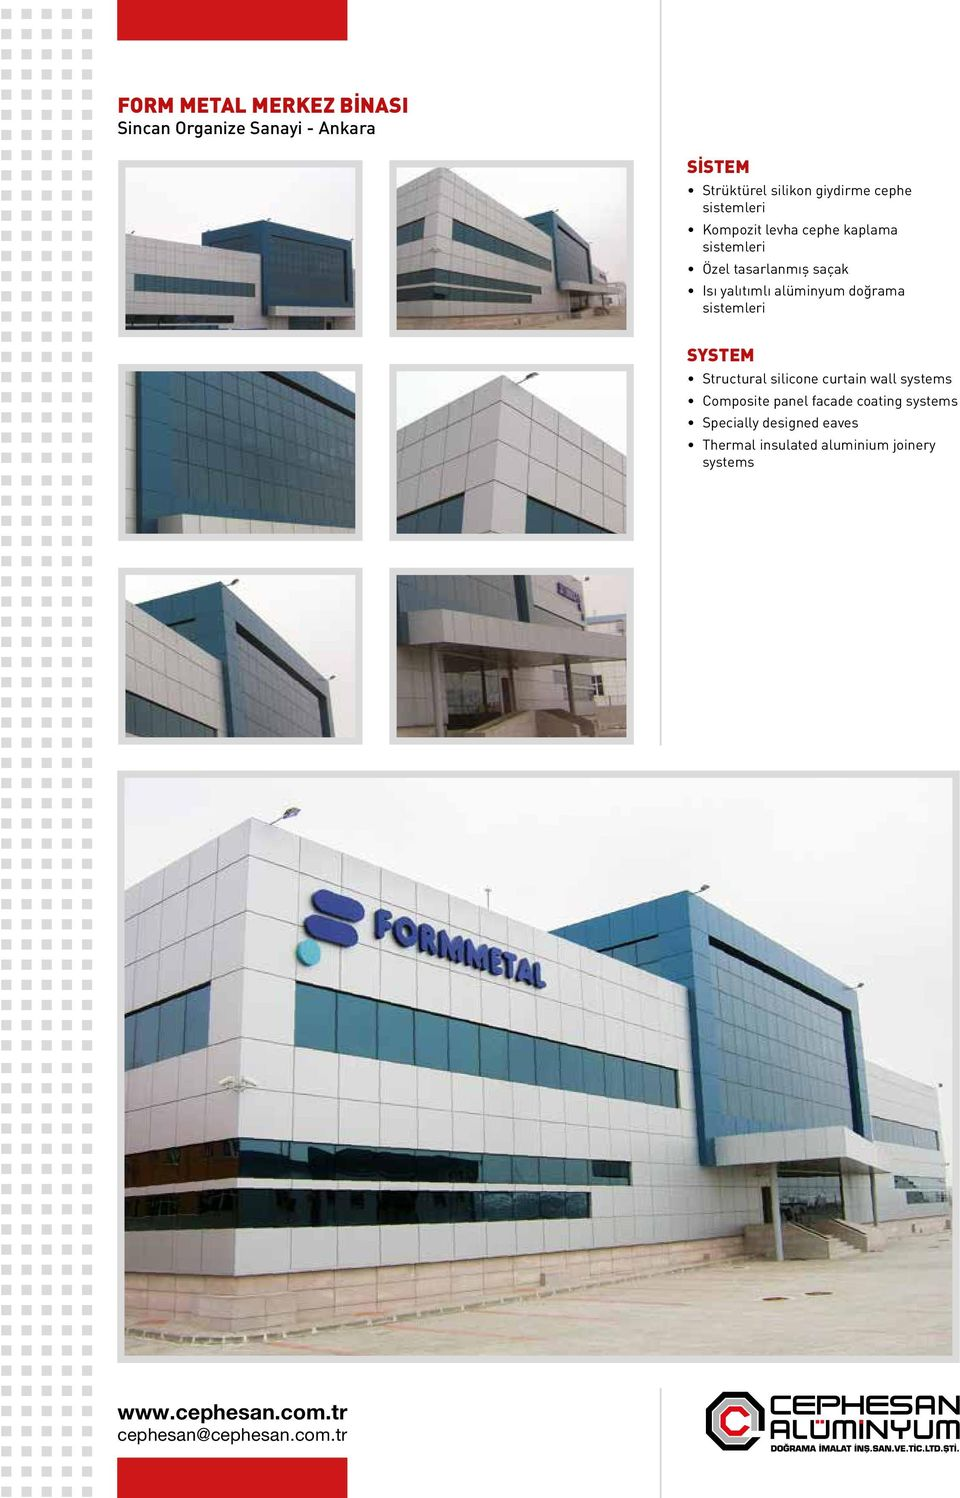 alüminyum doğrama Structural silicone curtain wall systems Composite panel